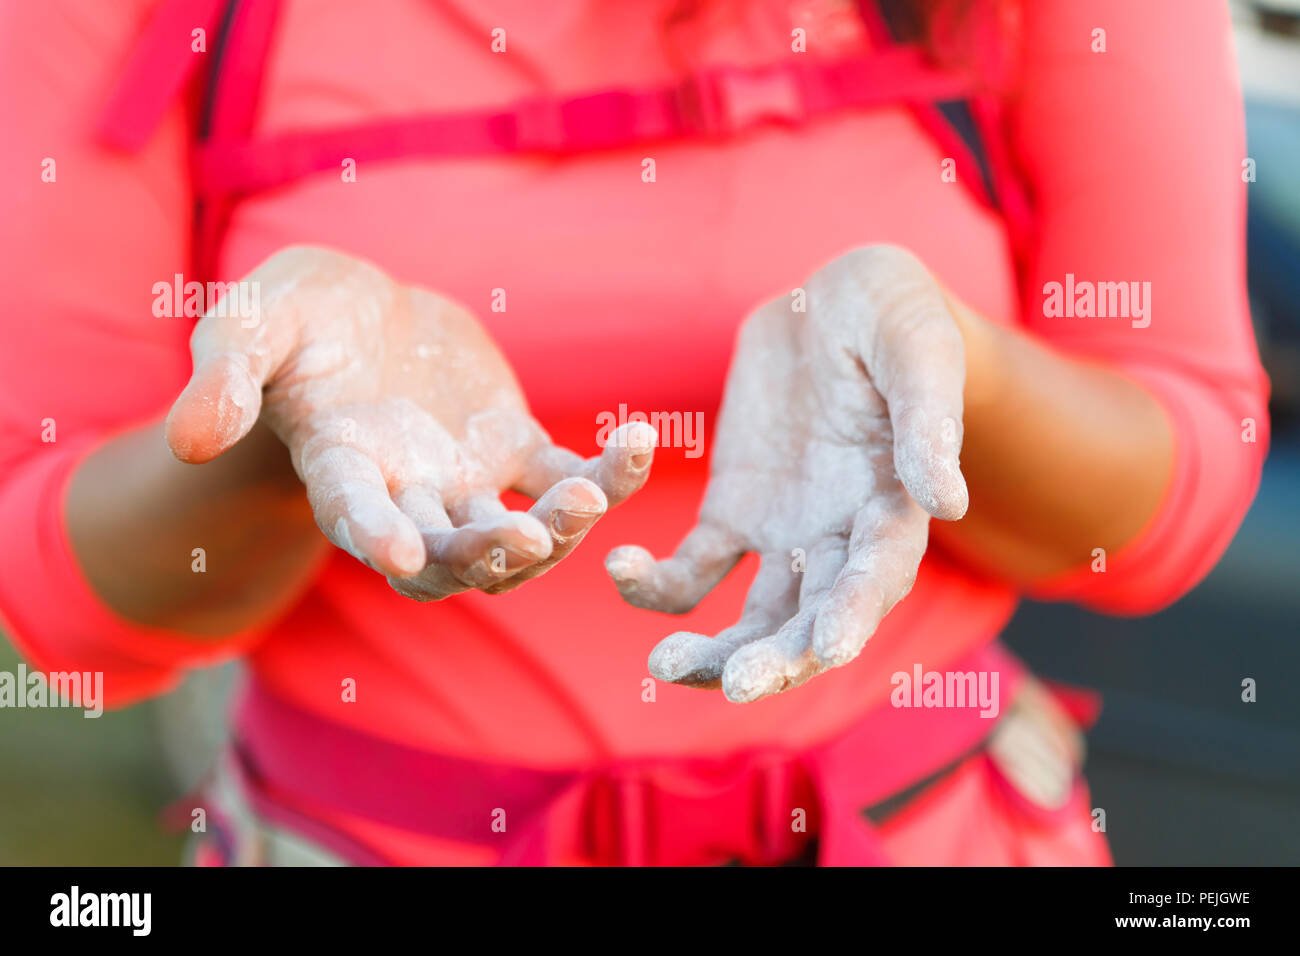 Image of woman climber with talc on hands - Stock Image